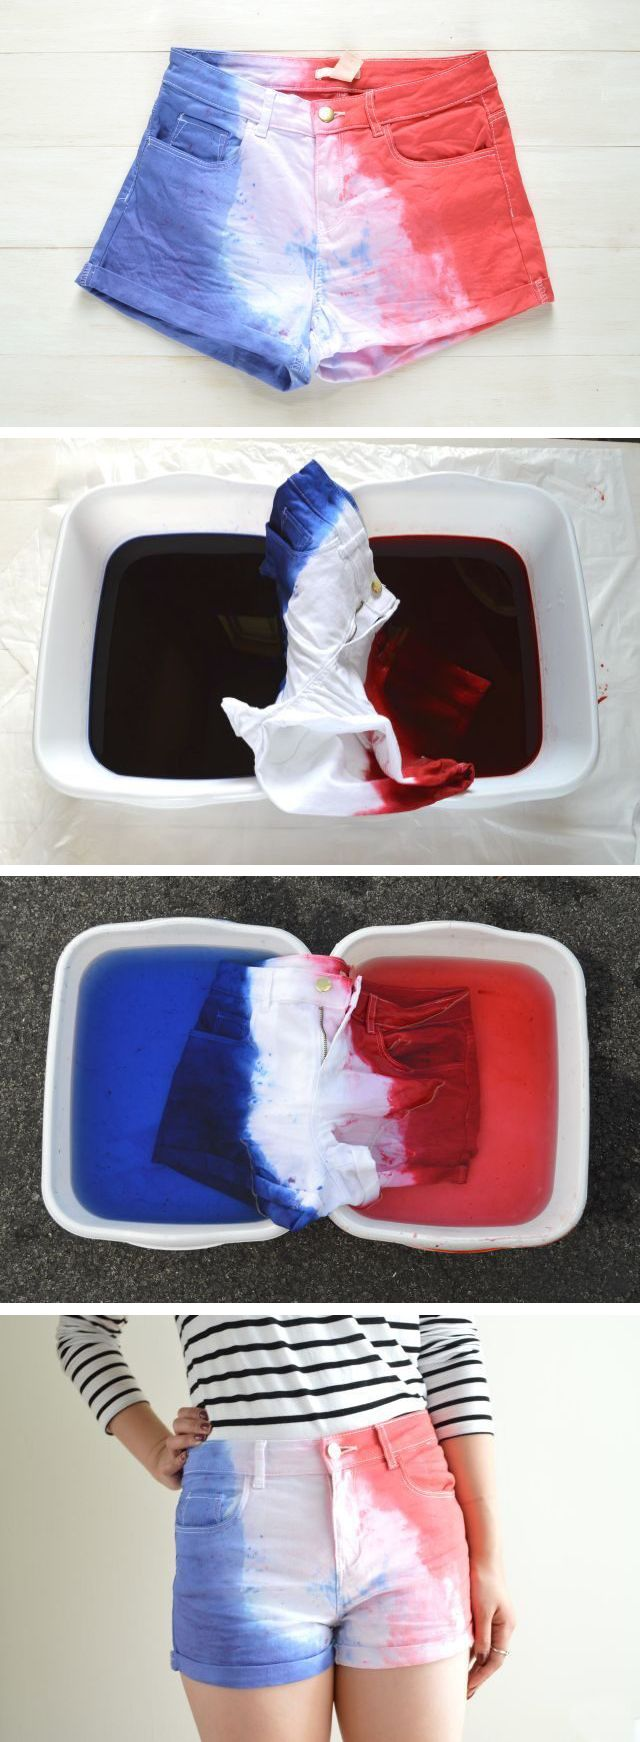 Dip dye white shorts to make them perfect for 4th of July! So cute!  DIY instructions here: http://www.ehow.com/how_12340645_make-red-white-blue-shorts.html?utm_source=pinterest.com&utm_medium=referral&utm_content=freestyle&utm_campaign=fanpage